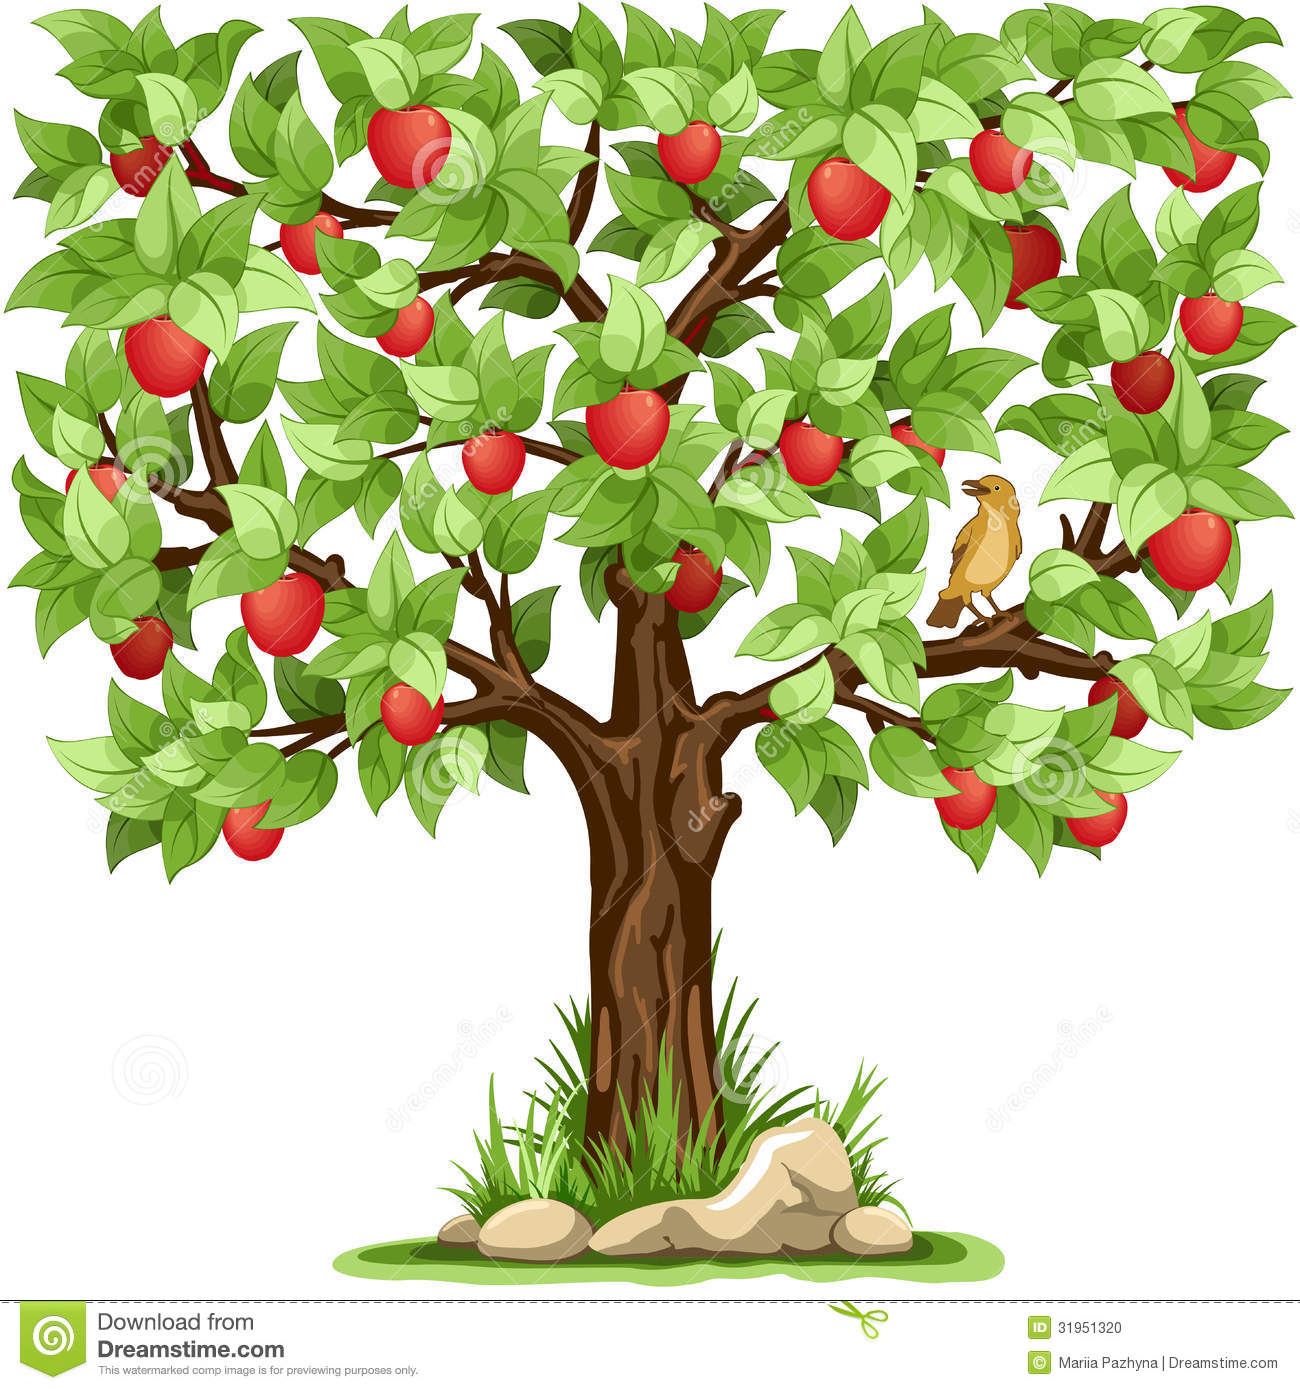 Apple tree flowers clipart - Clipground